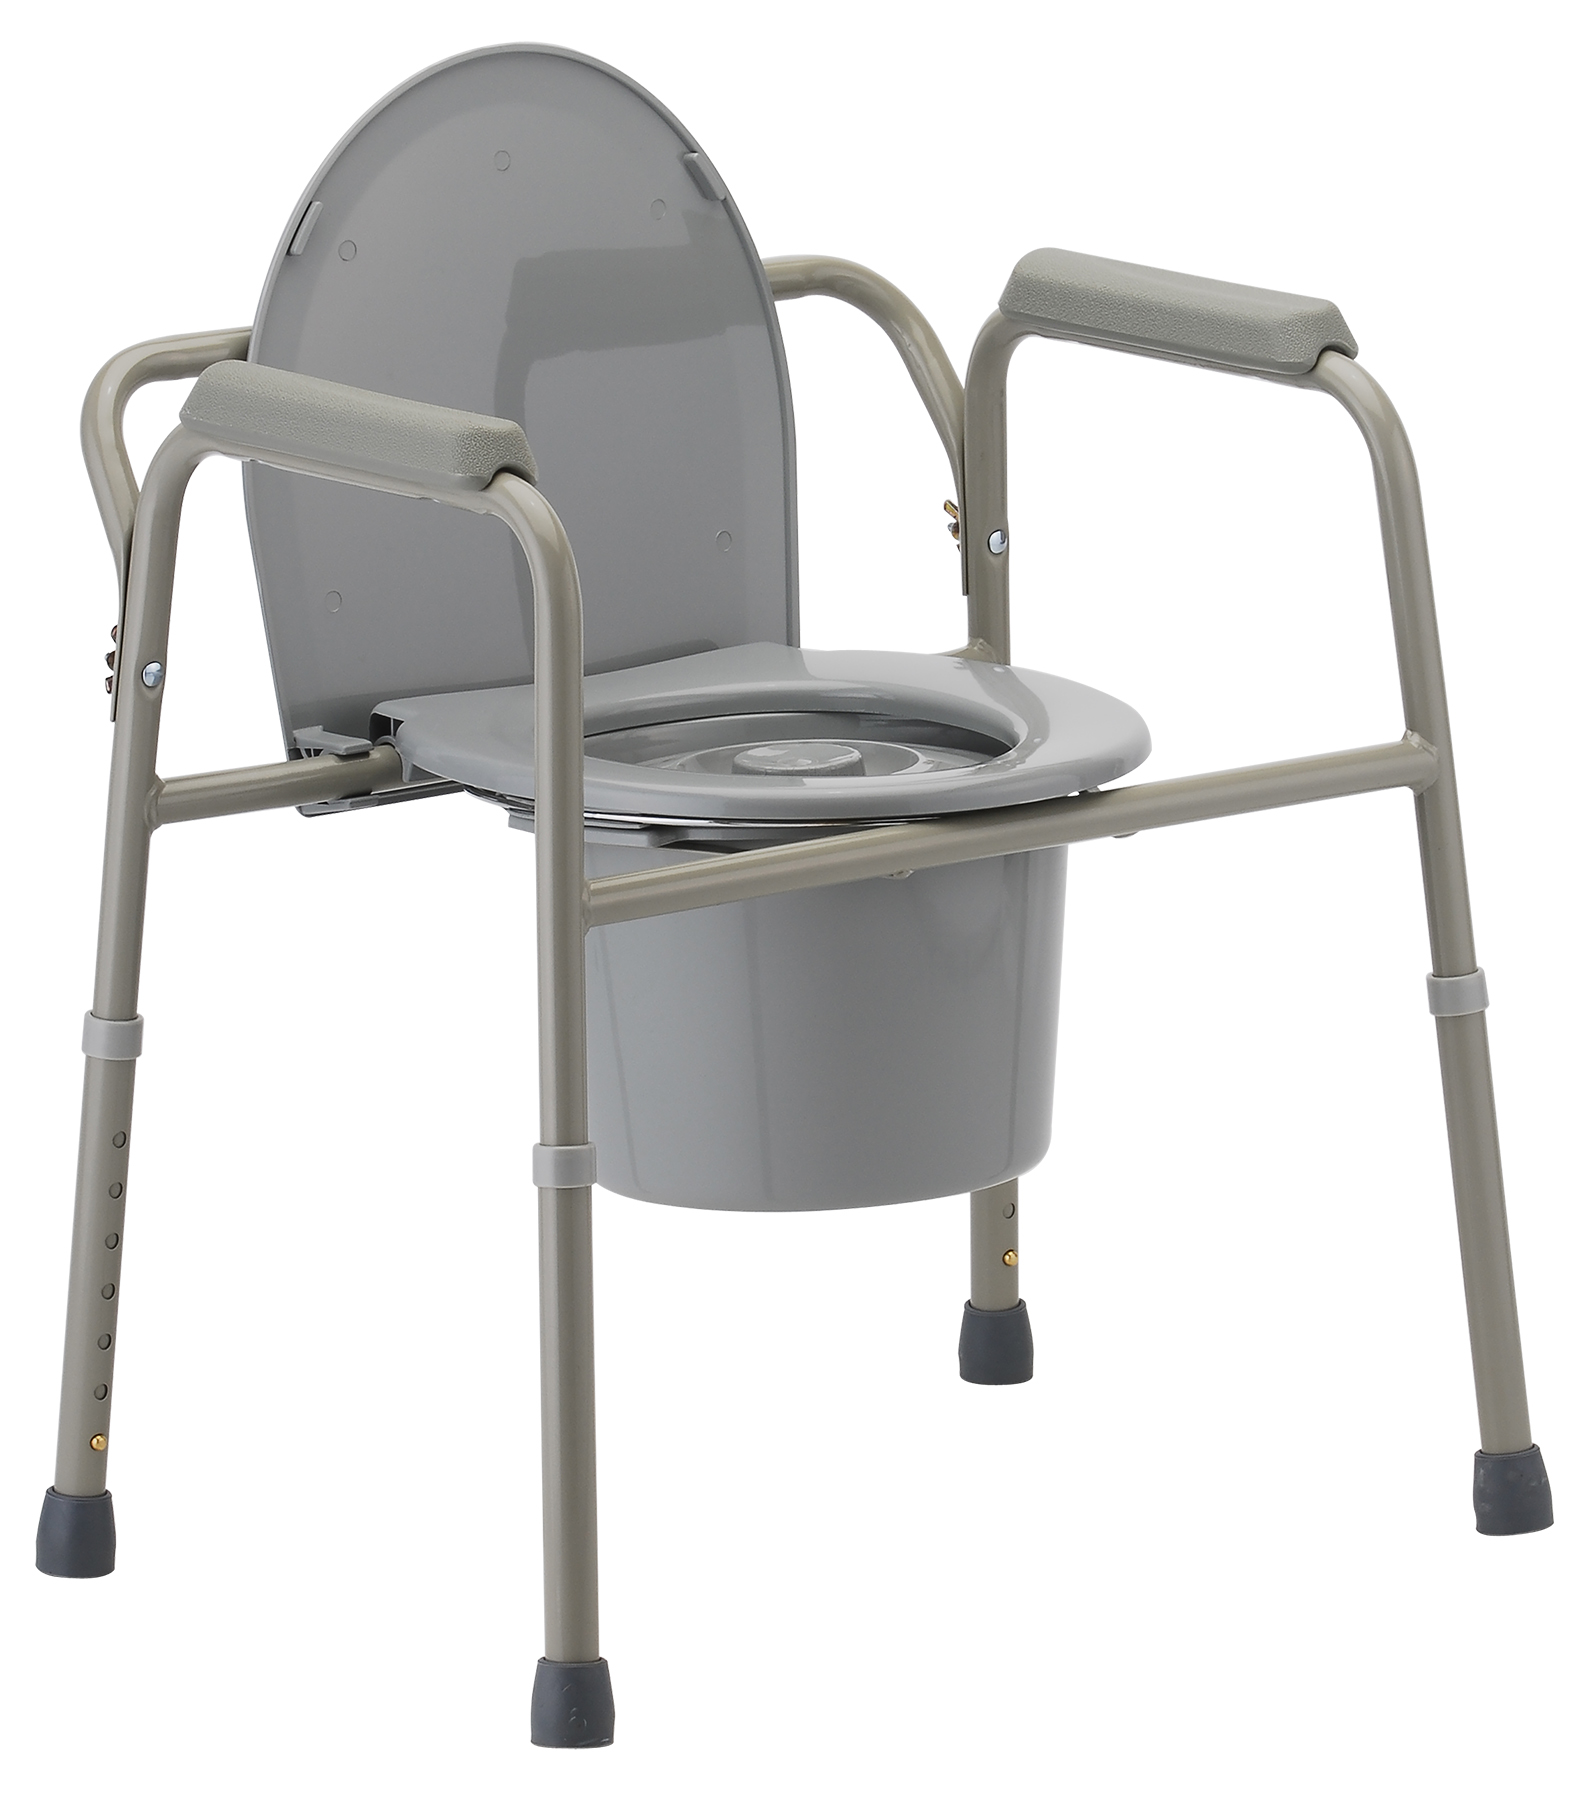 ProBasics 3in1 Folding Commode